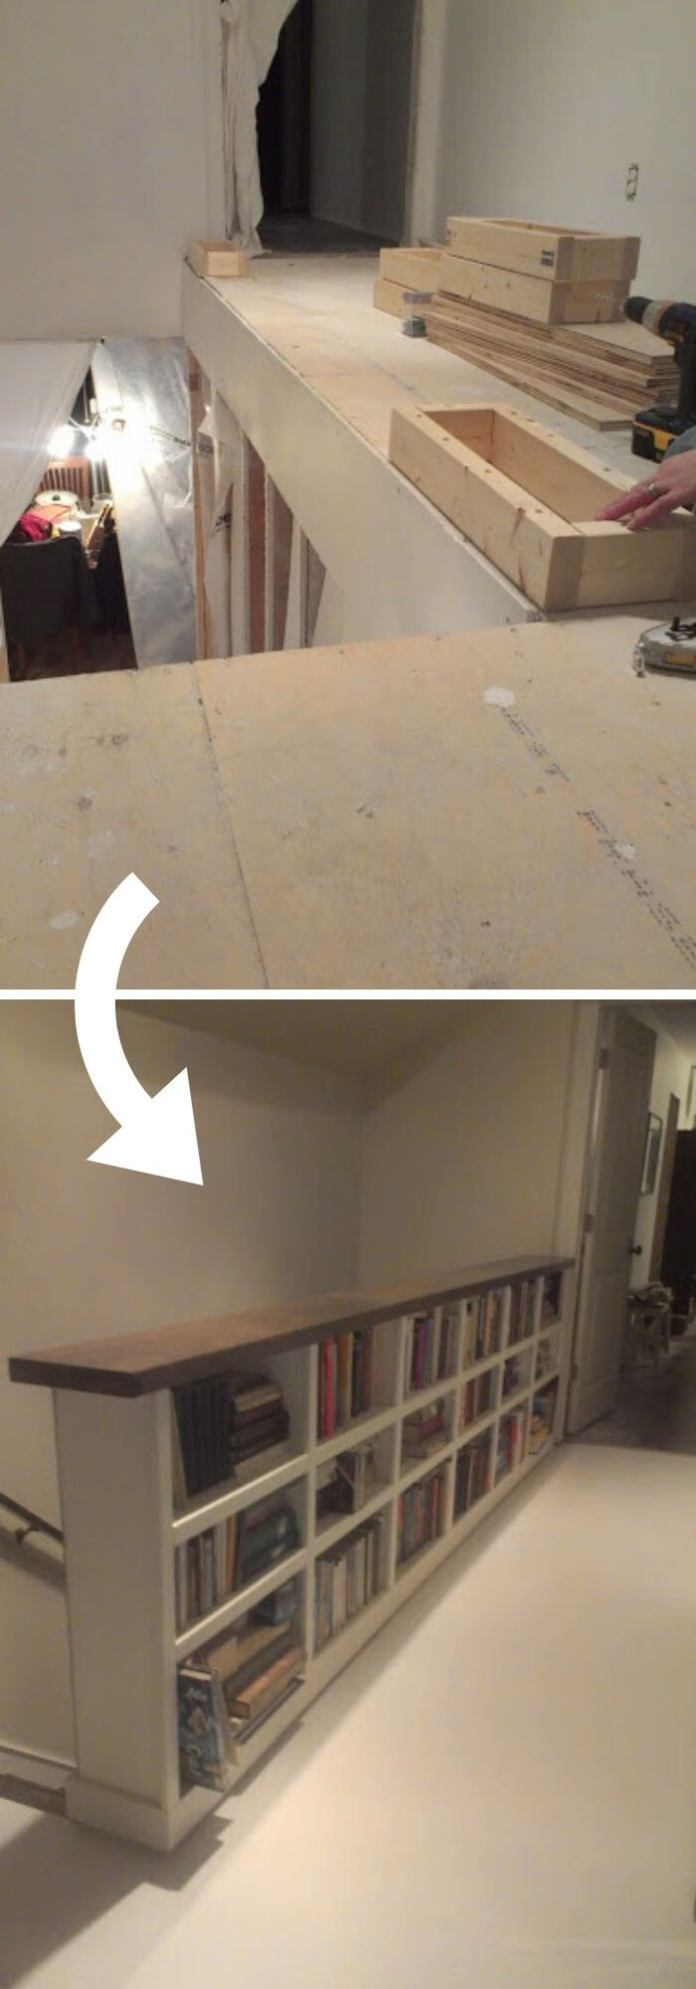 Shifting the attic staircase into a compact bookshelves